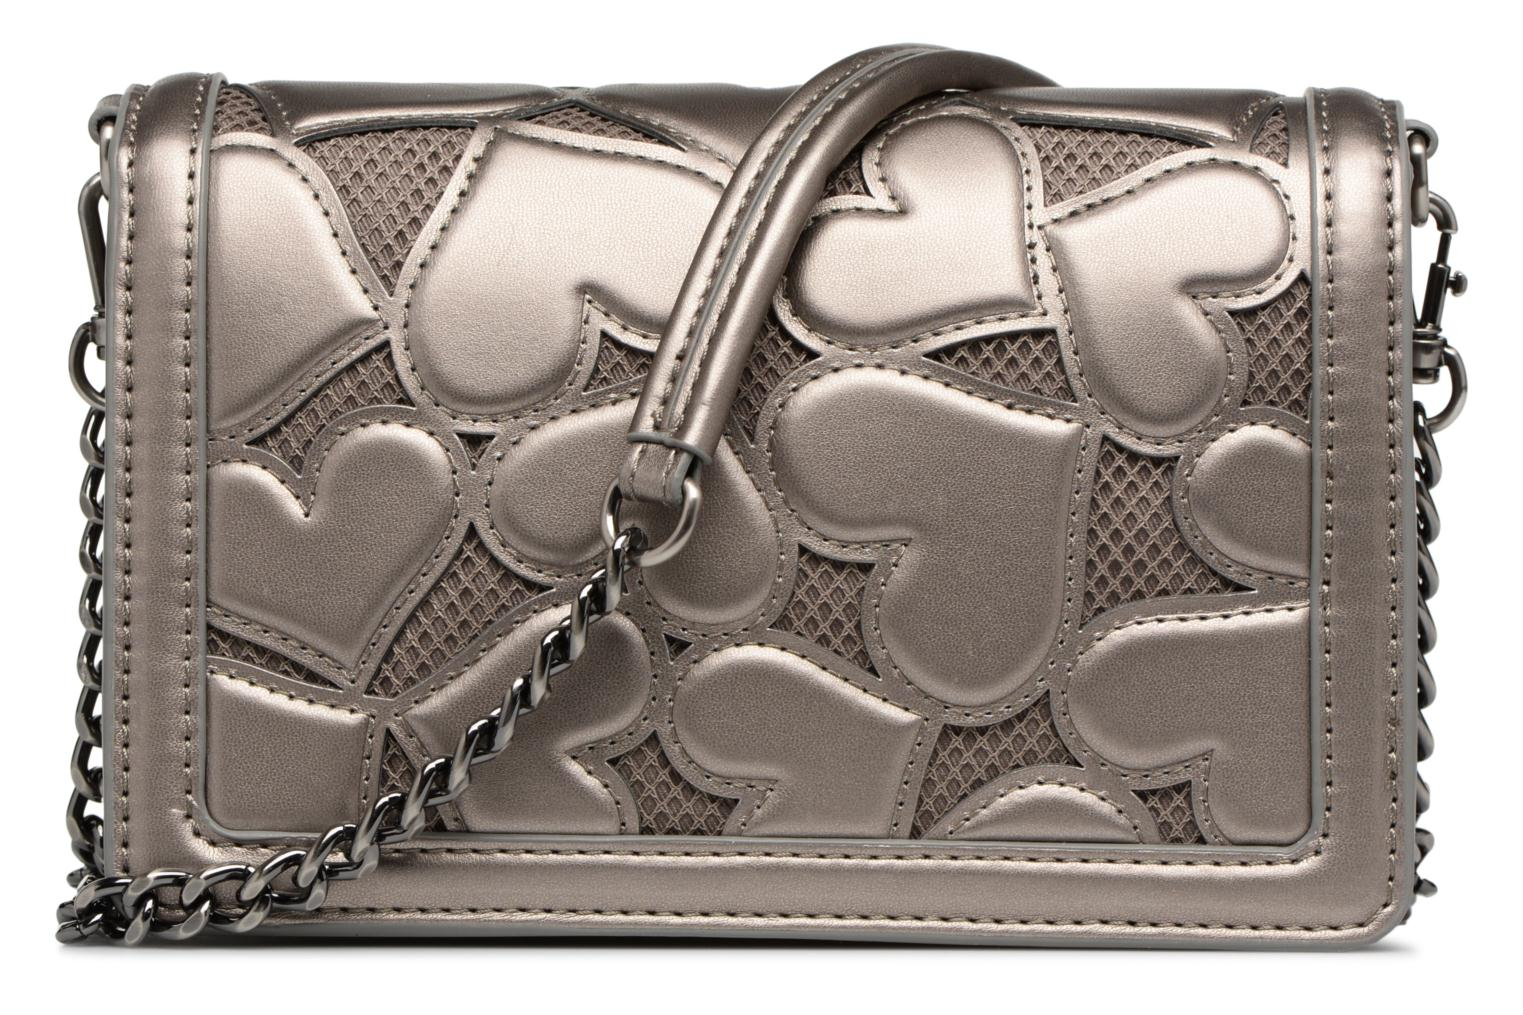 PELTRO 0910 Metallic Love Crossbody Love Moschino q6wIXWH